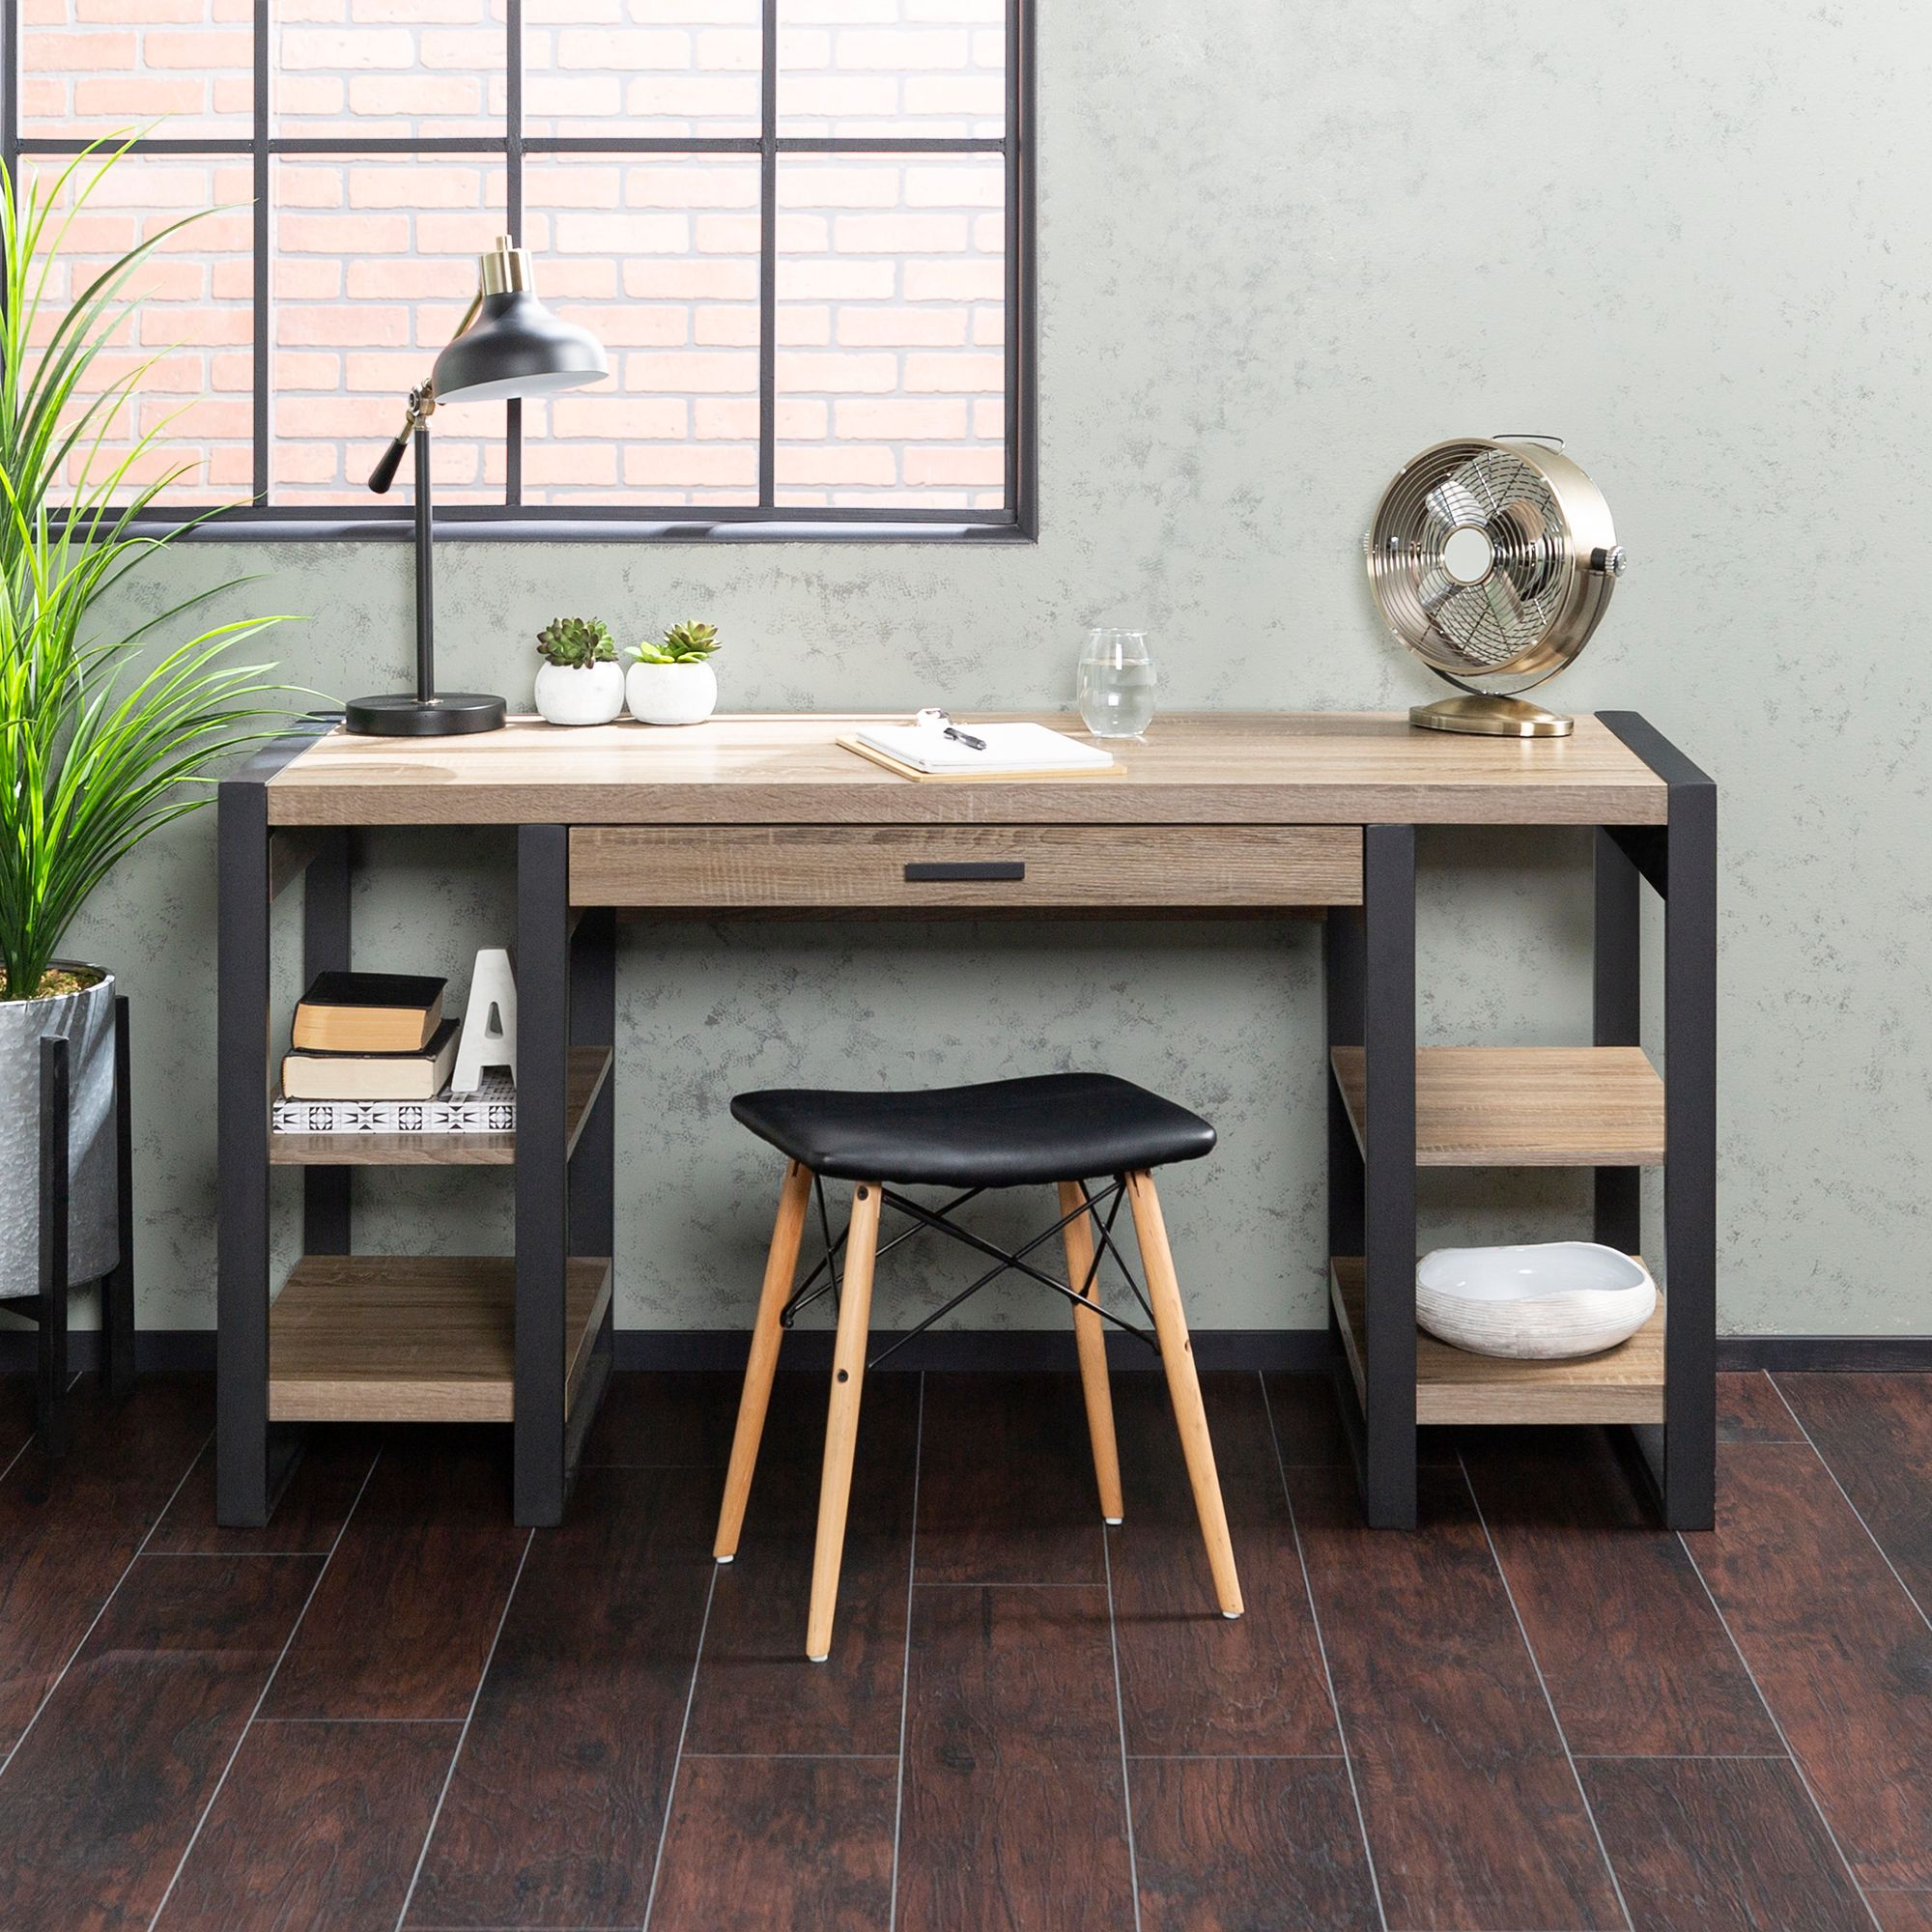 Is your home office lacking style points? 👔 Give it an